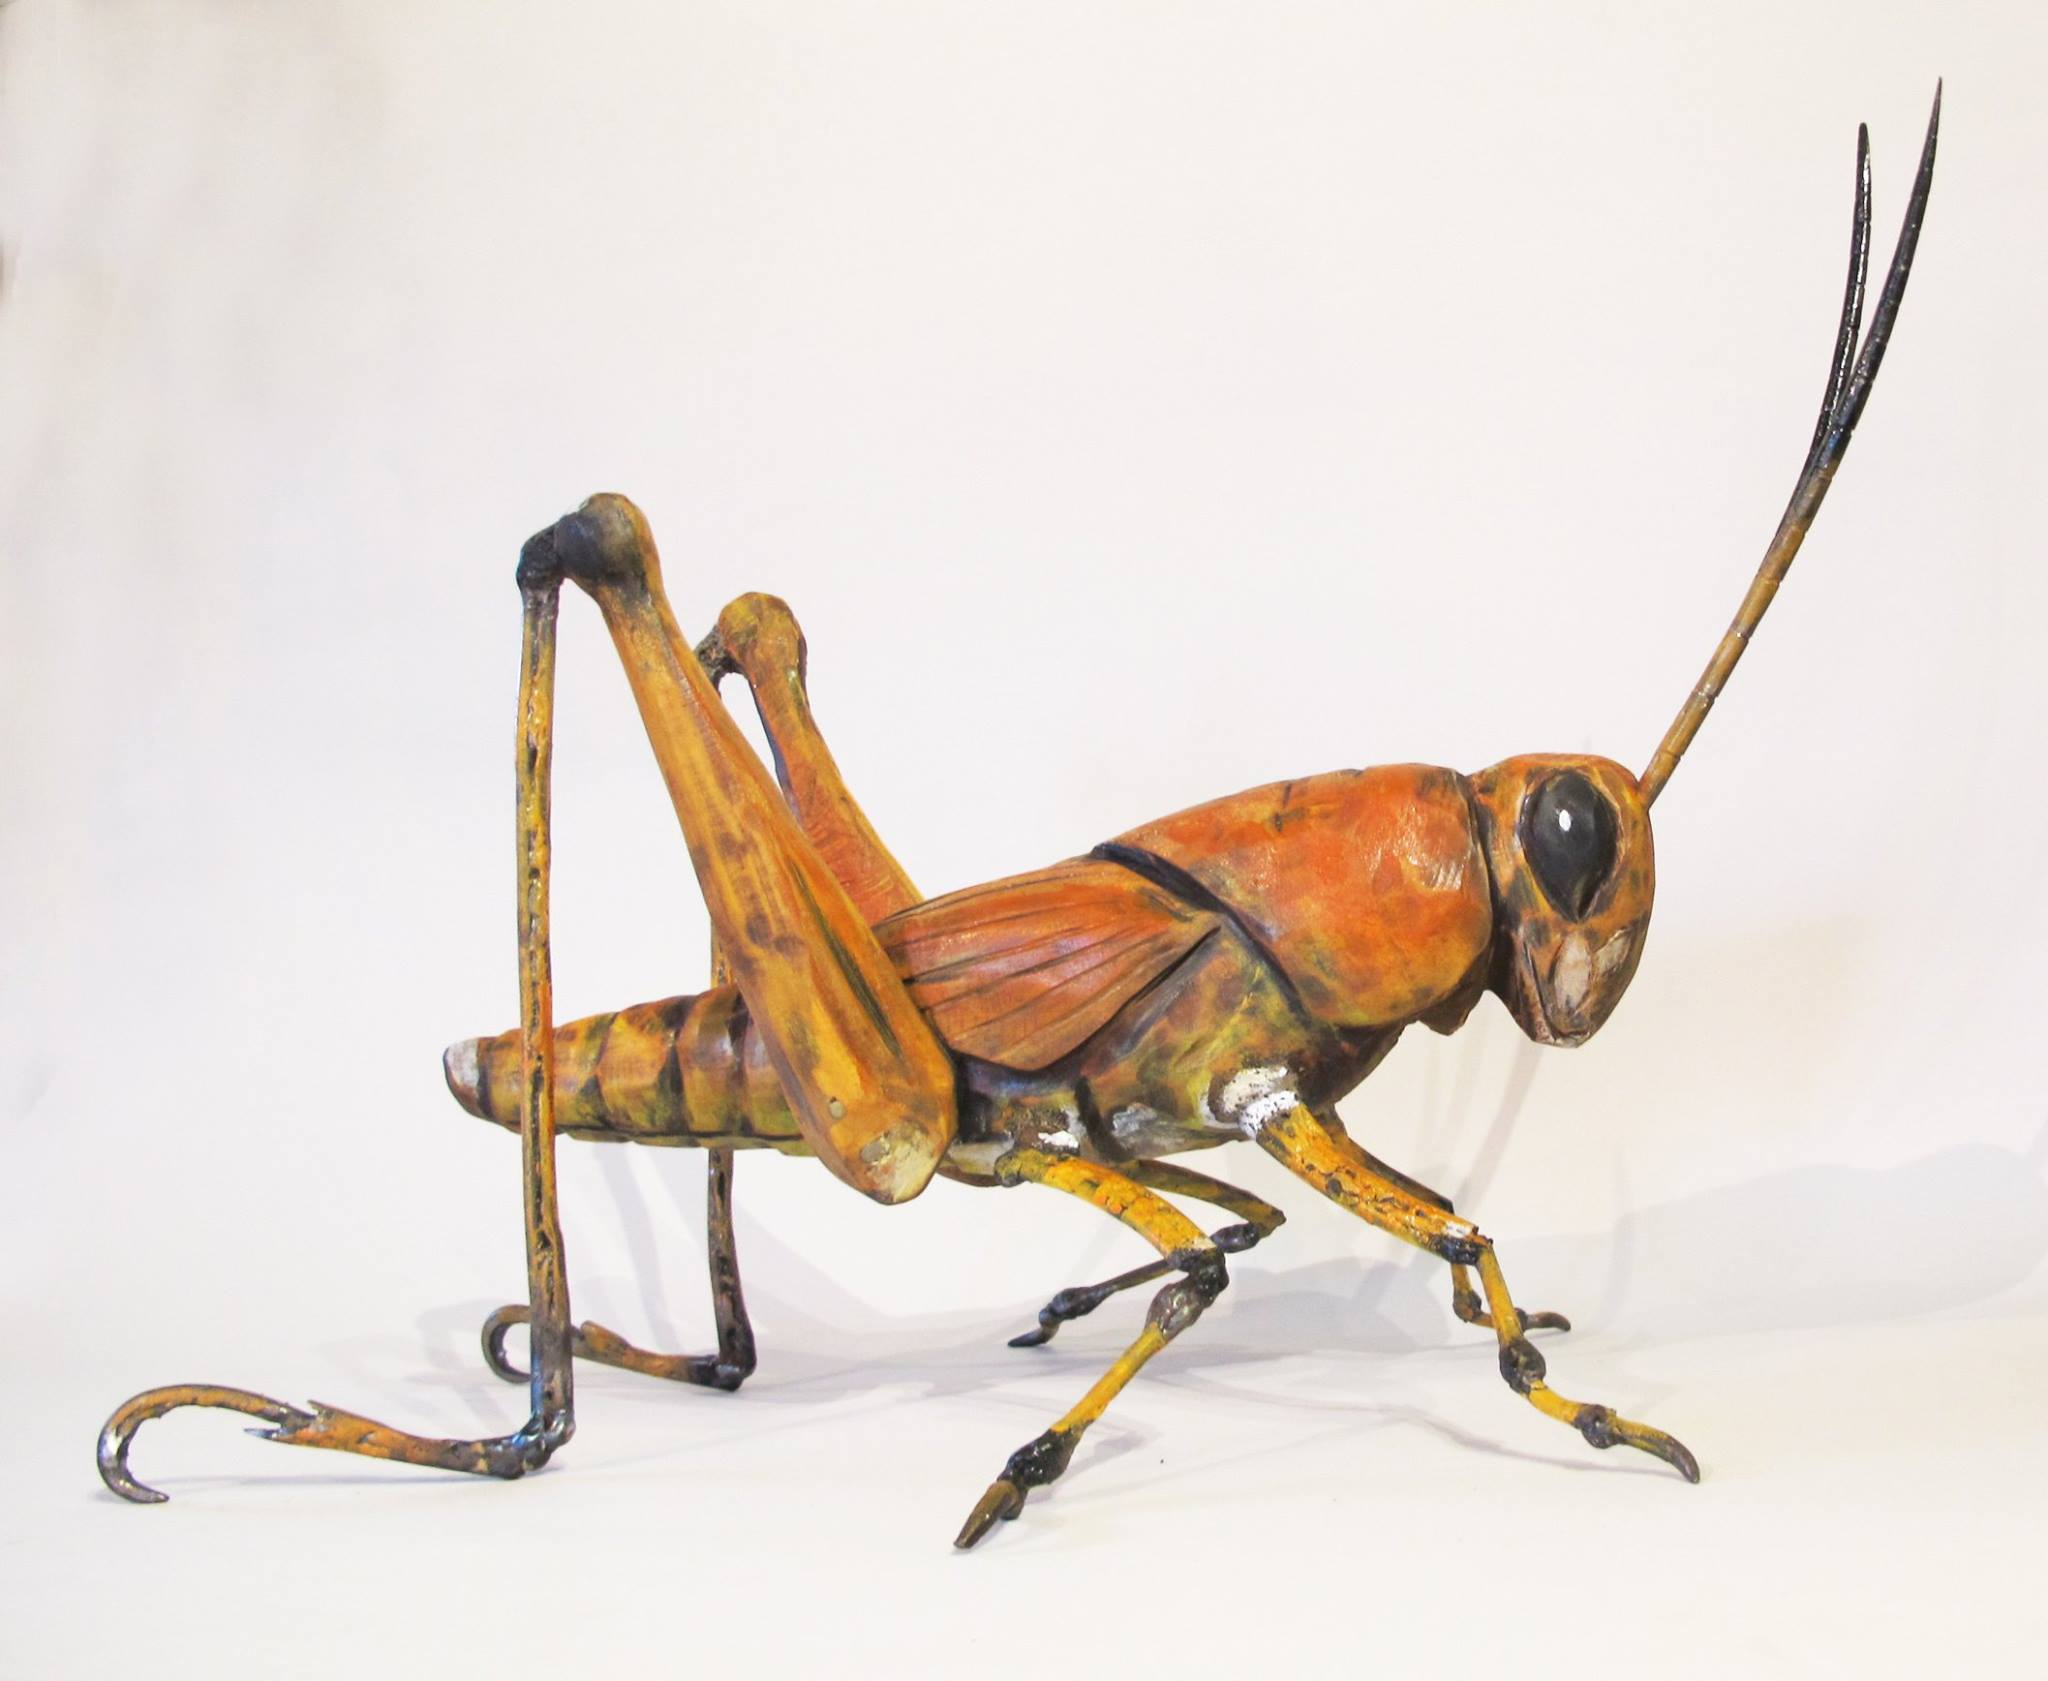 Life-like bugs - available at PINK ALLIGATOR GALLERY | BREAUX BRIDGE